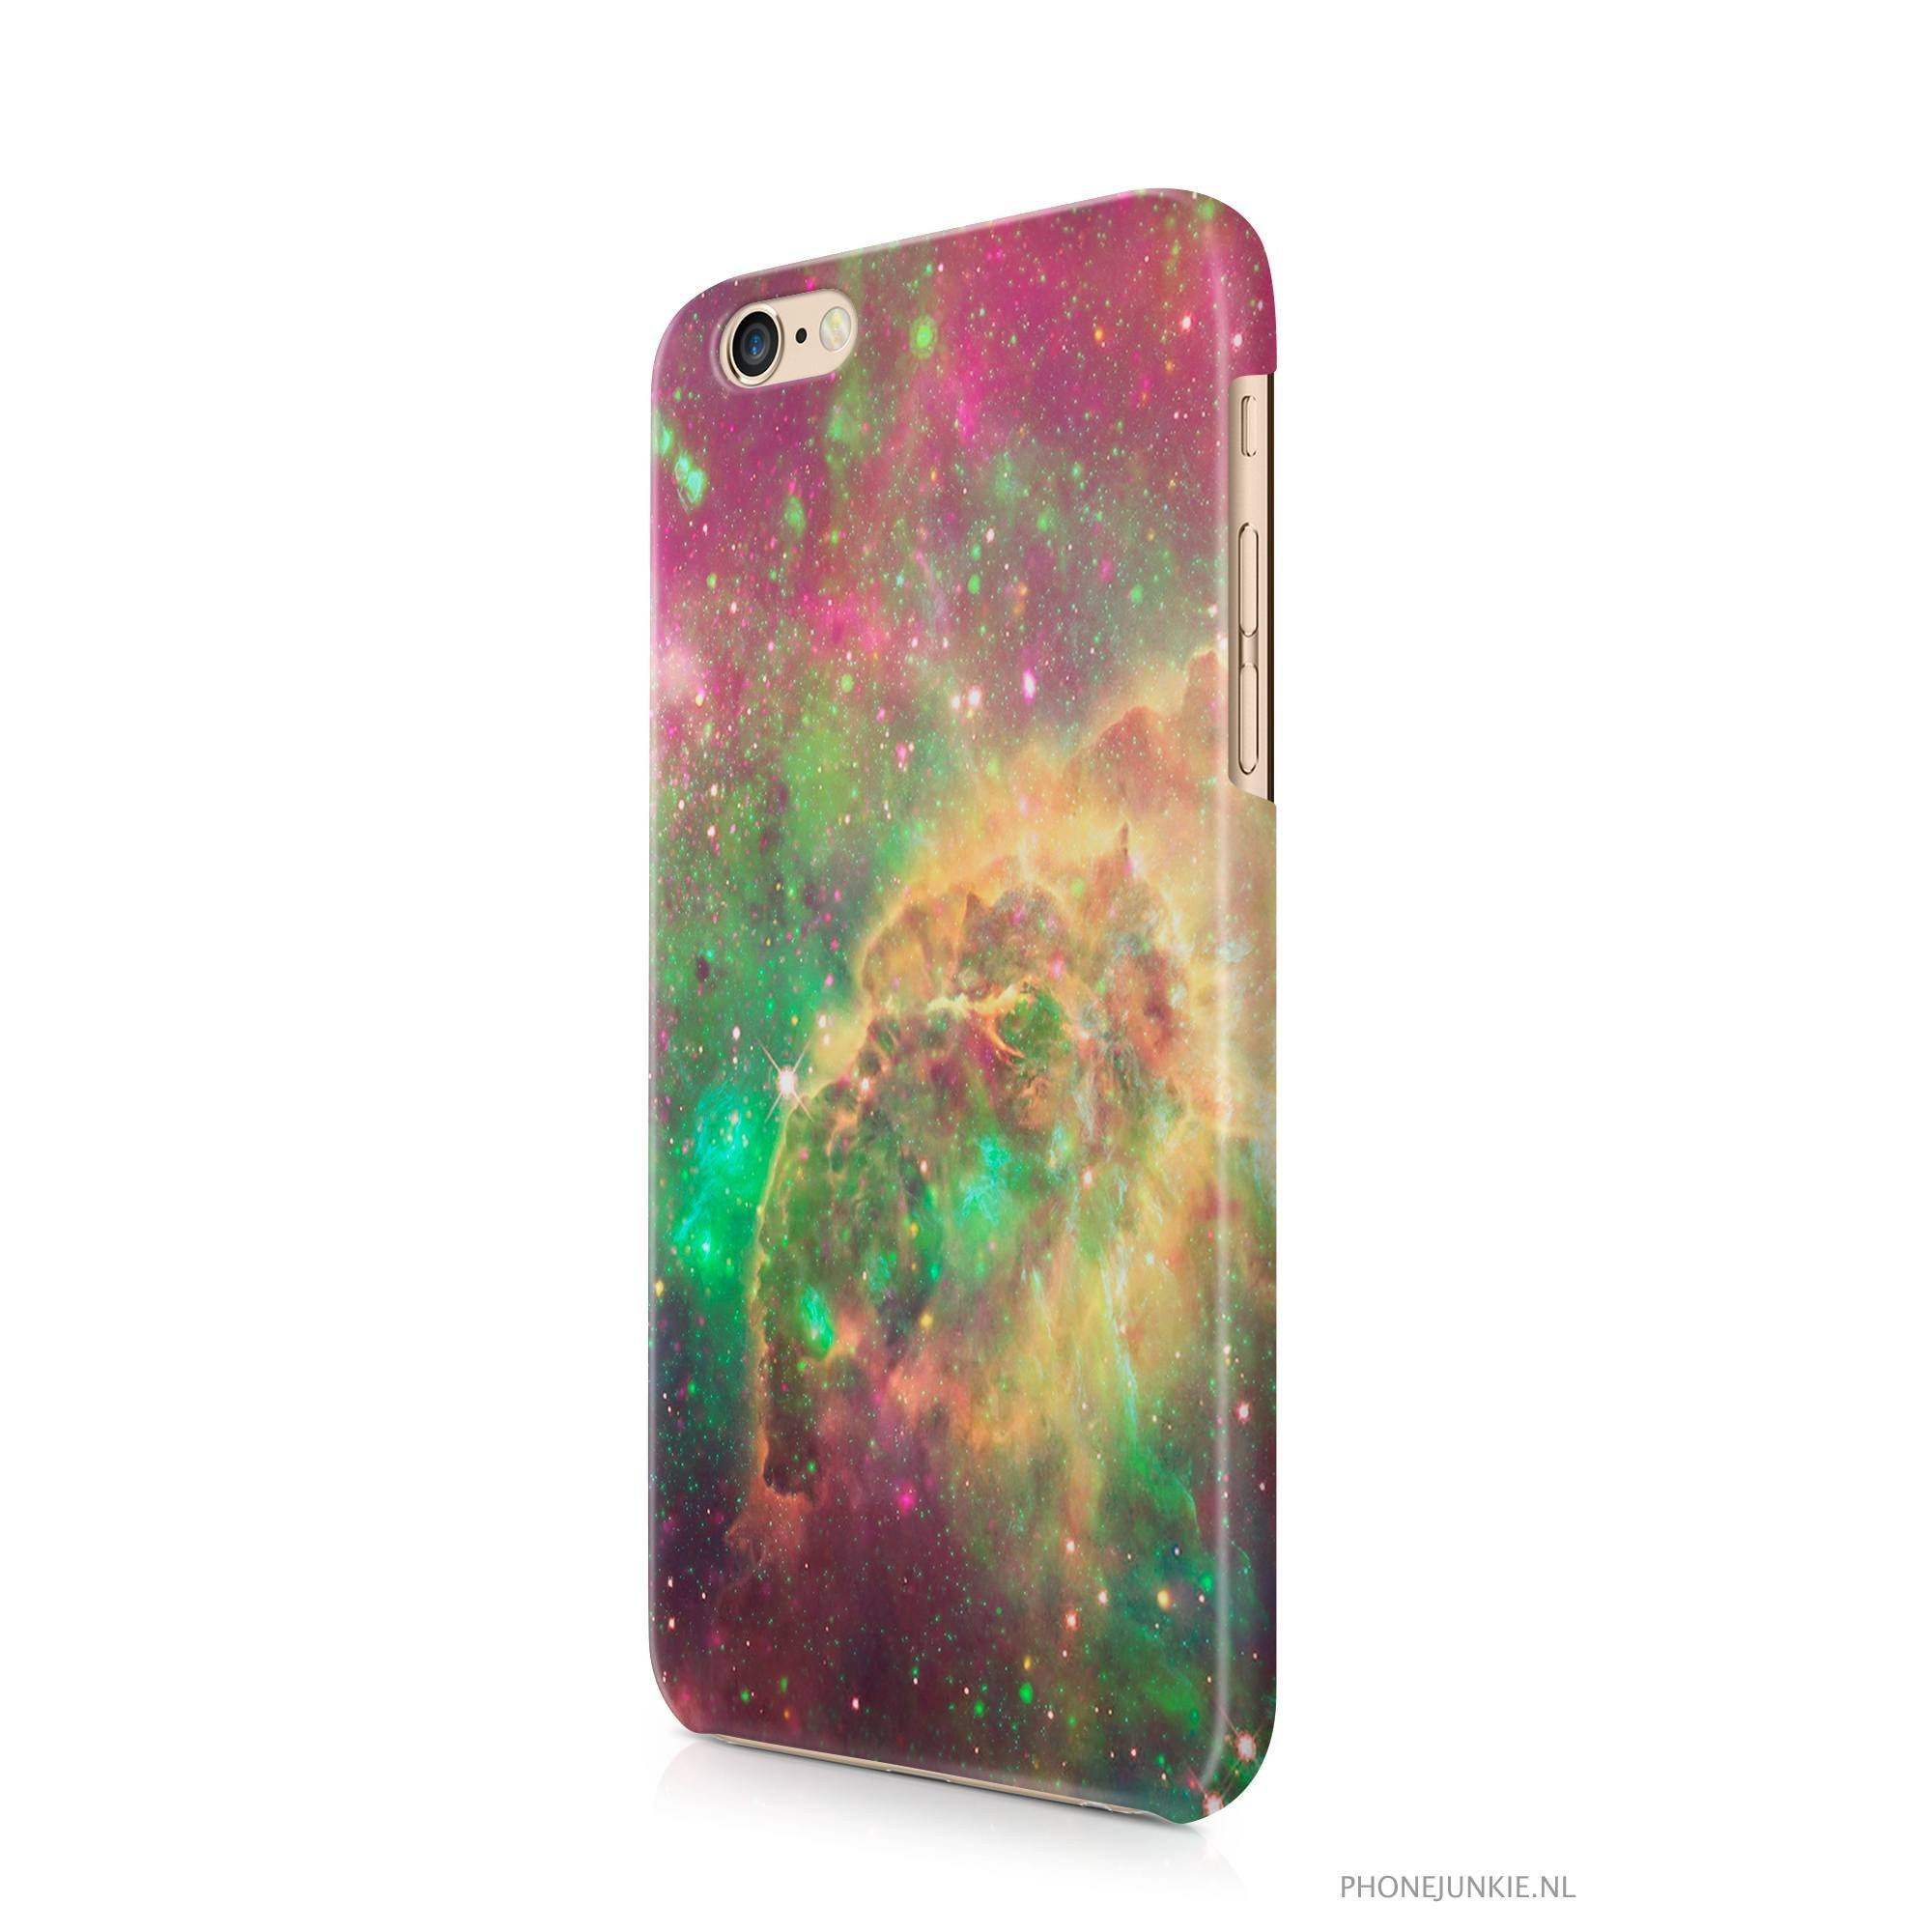 iPhone 6/6s hoesje - Outta Space - PhoneJunkie